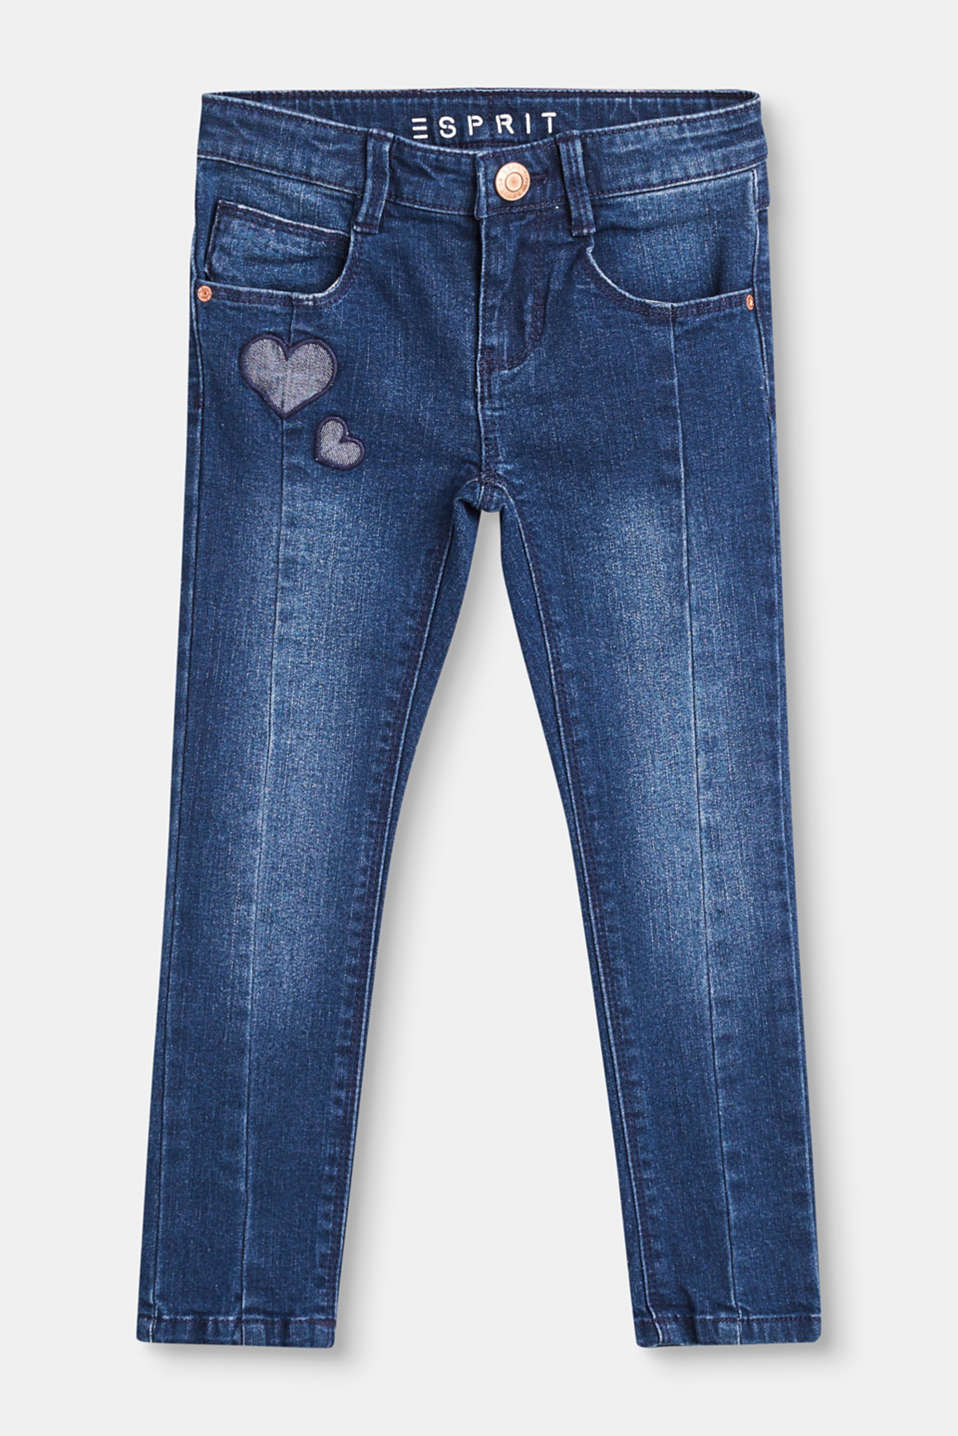 Esprit - Stretch jeans with heart appliqués